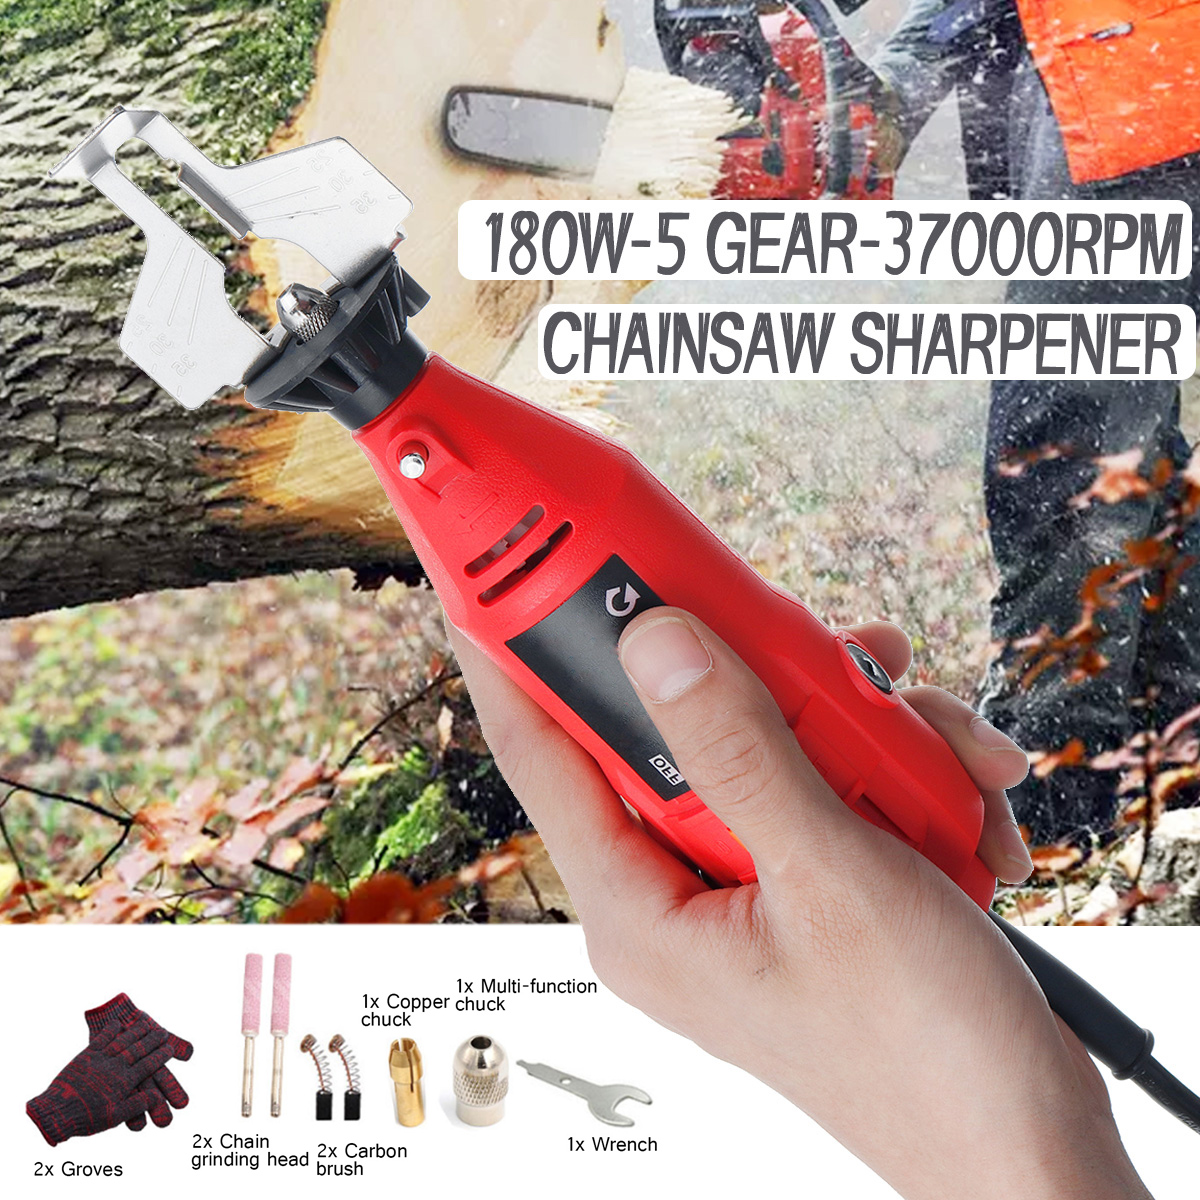 180W 5 Gears Chain Saw Grinding Machine Sharpener Chainsaw Electric Mini Handheld Grinder File Milling Machines Tools Set